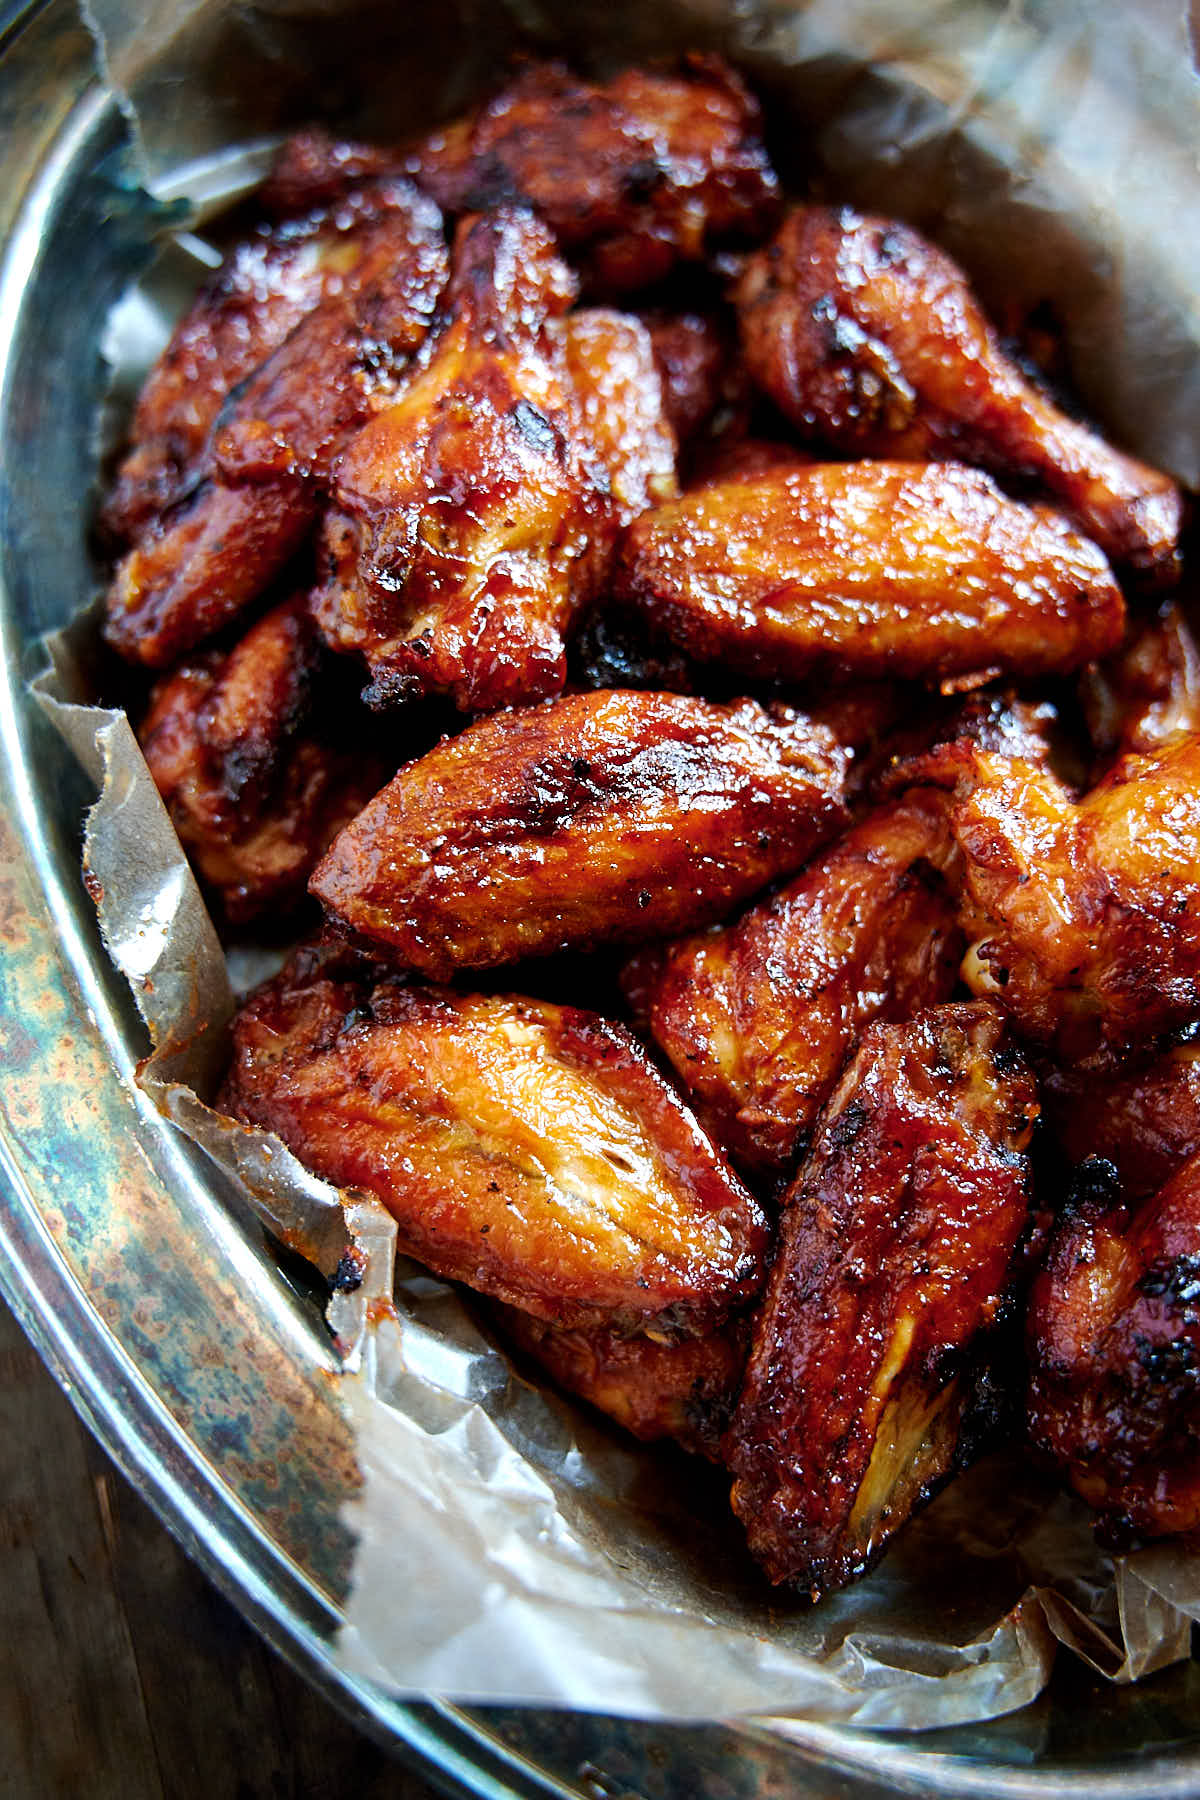 Bright red, crispy BBQ chicken wings in a serving basket.